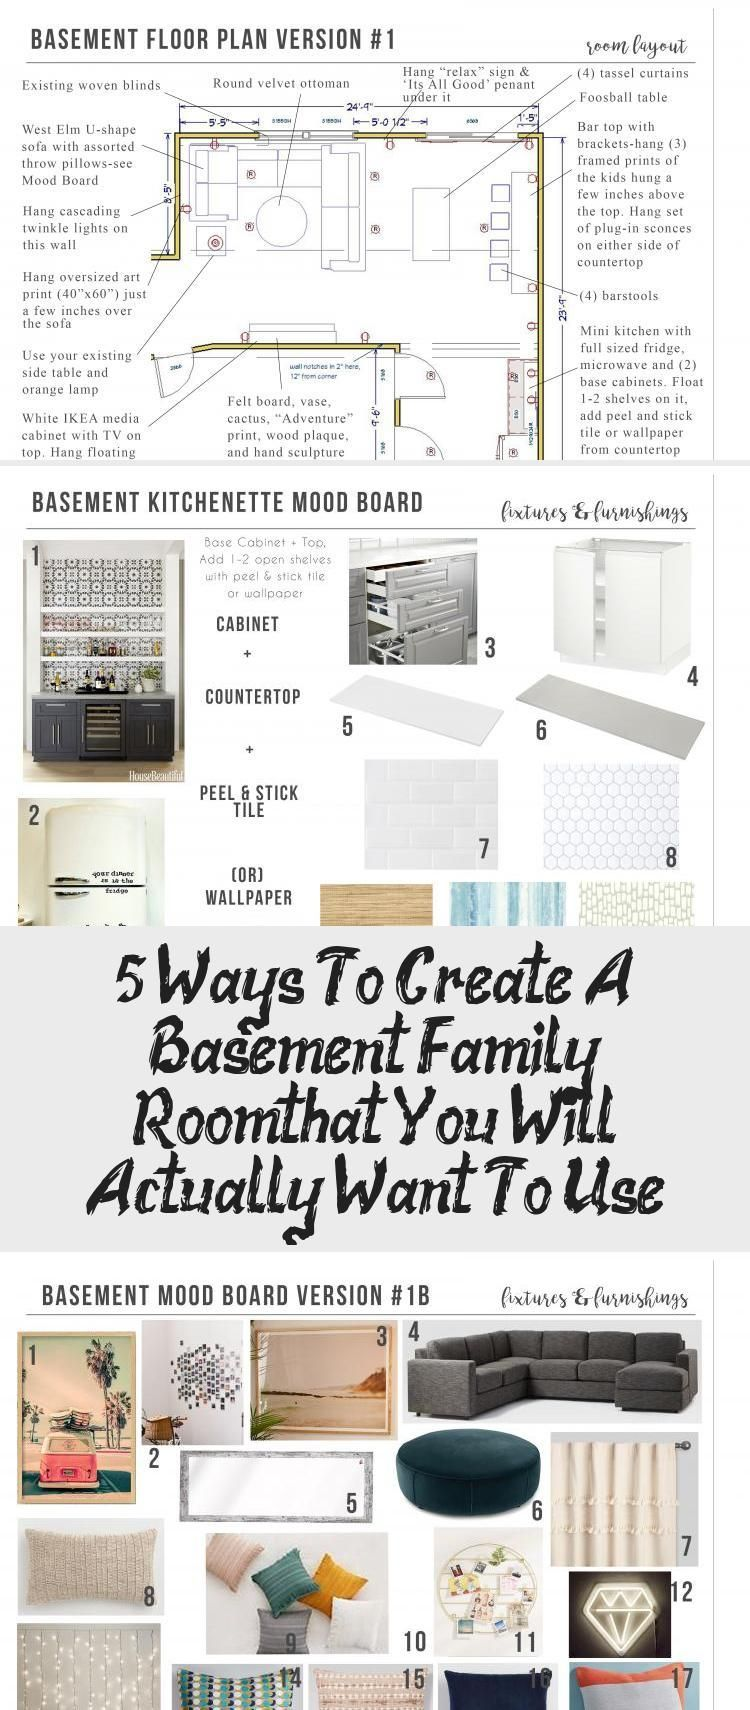 Order your room-inside-a-box, see inside at Postbox Designs, Interior E-Design: 5 Ways to Create a Basement Family Room You Will WANT to Use, Kid Hang-Out Space, Basement Family Room Ideas via Online Interior Design #interiordesignInteriorismo #Vintageinteriordesign #interiordesignSketches #interiordesignRetro #interiordesignWhite #interior design sketches floor plans